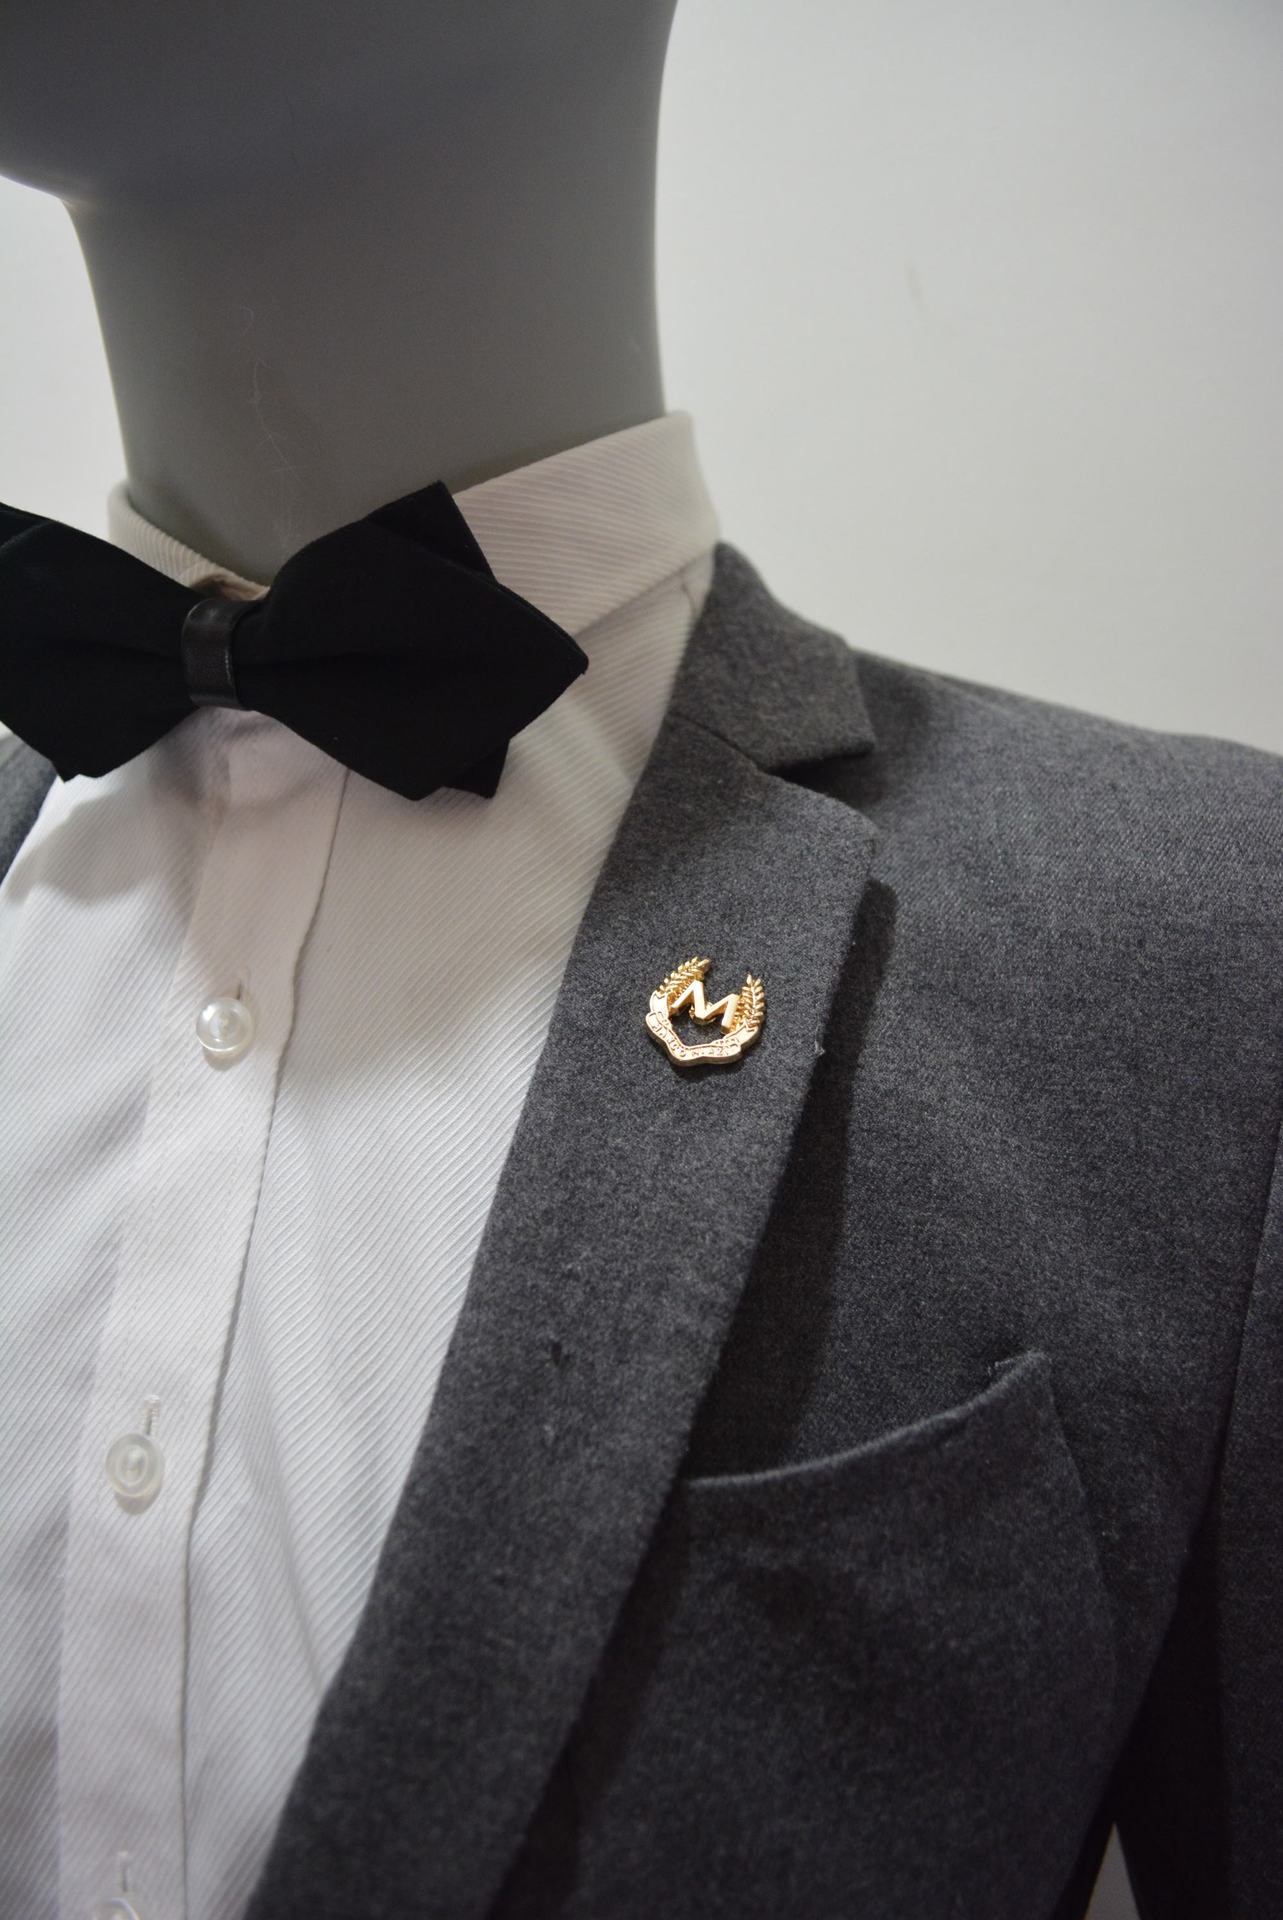 birdhichand brooch their latest fashion img men redefines with for suit statement